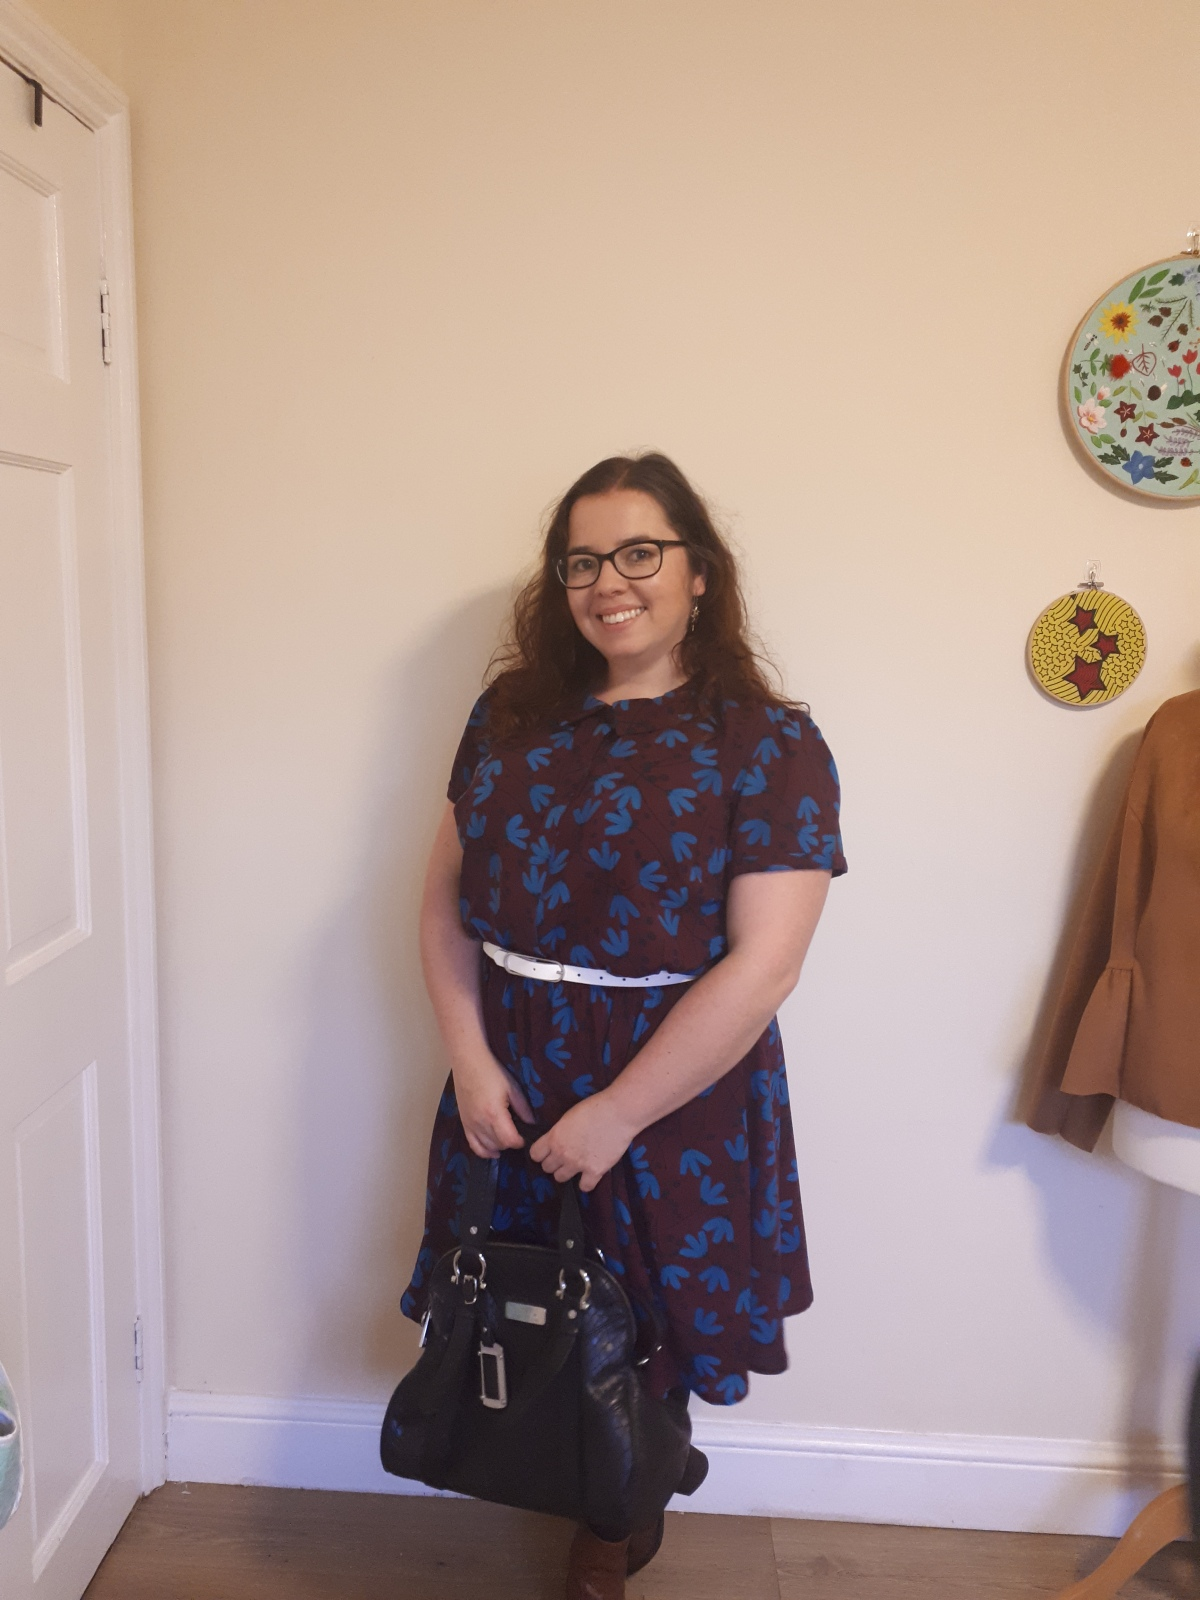 Time for a Bonnie dress – #SwapShareSew